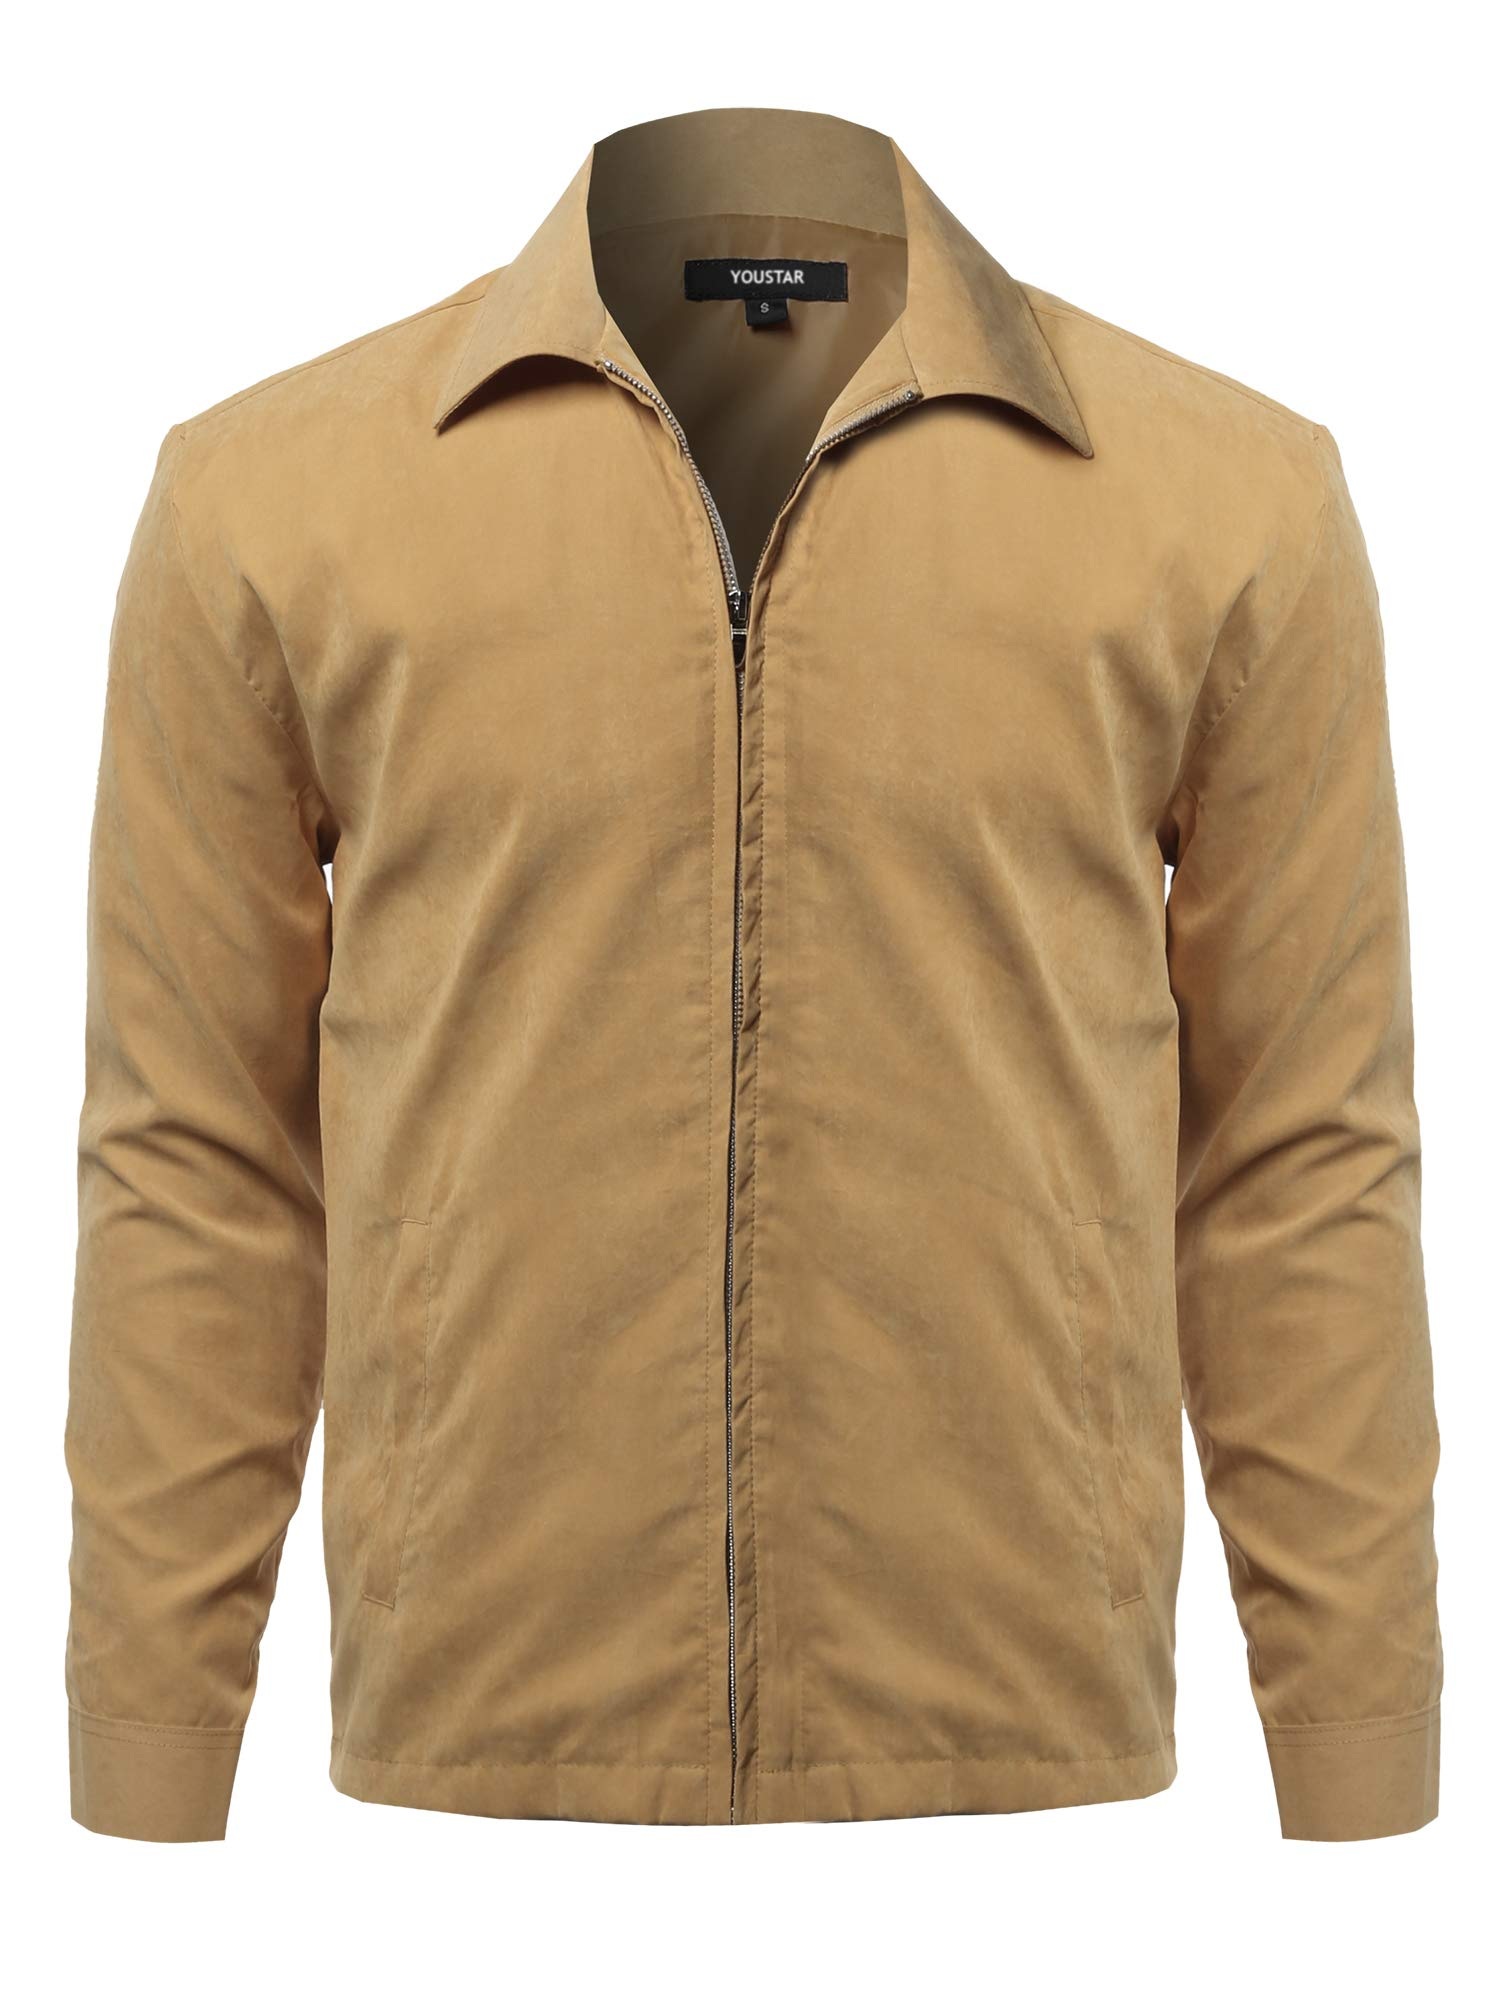 Solid Classic Golf Long Sleeves Zipper Closure Thin Layer Jacket Beige XXL by Youstar